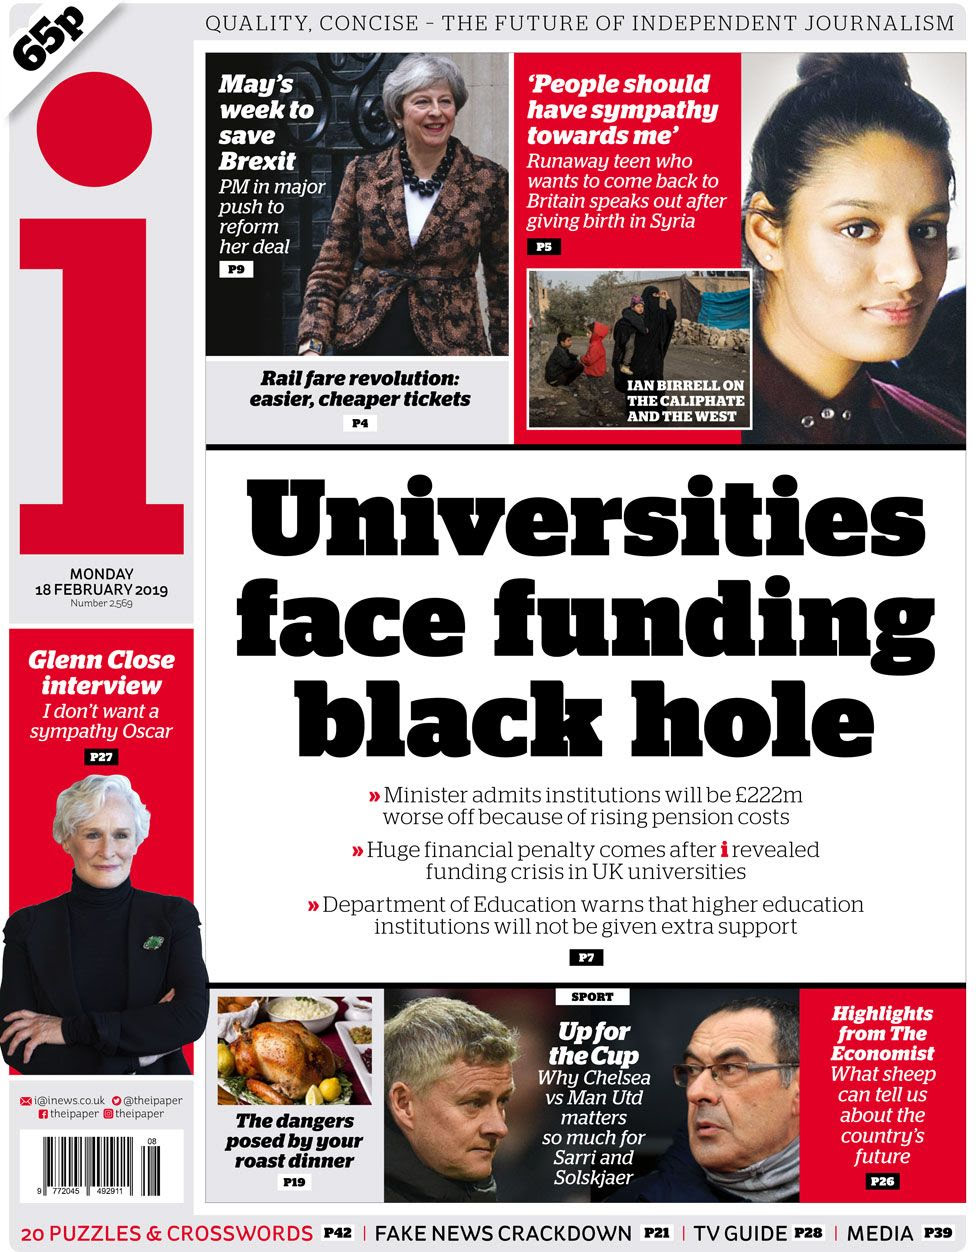 The i front page on 18 February 2019